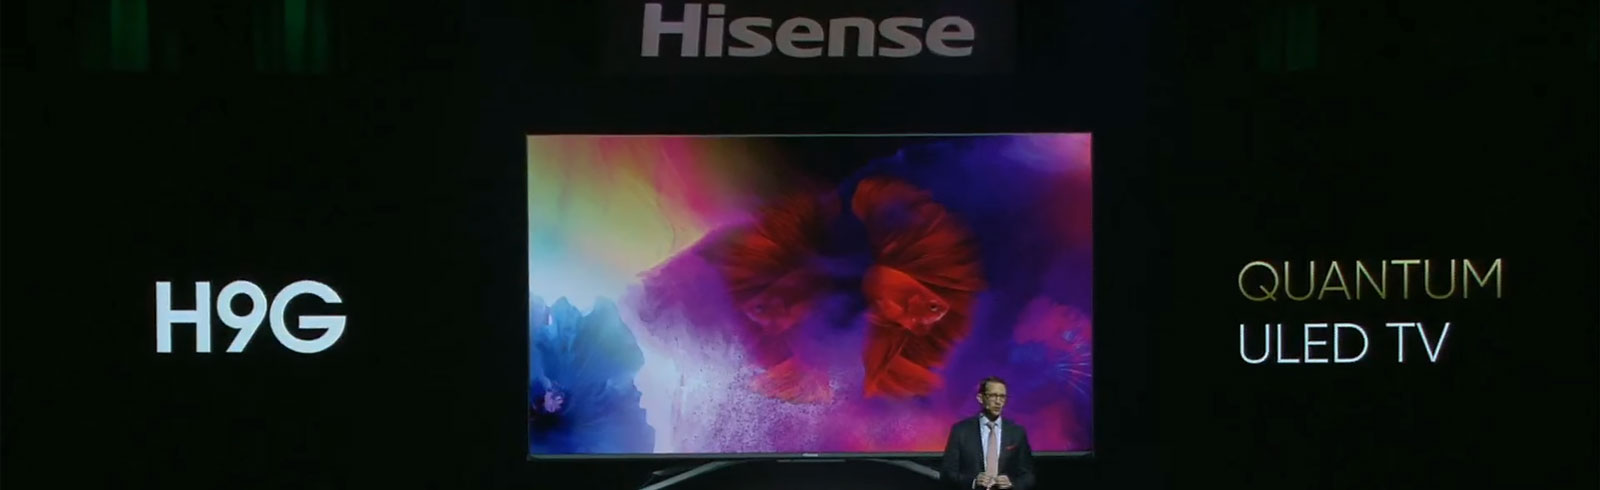 Hisense H9G and Hisense H8G go official with 4K ULED displays, Hisense H65, H4, R6 and R68 to follow